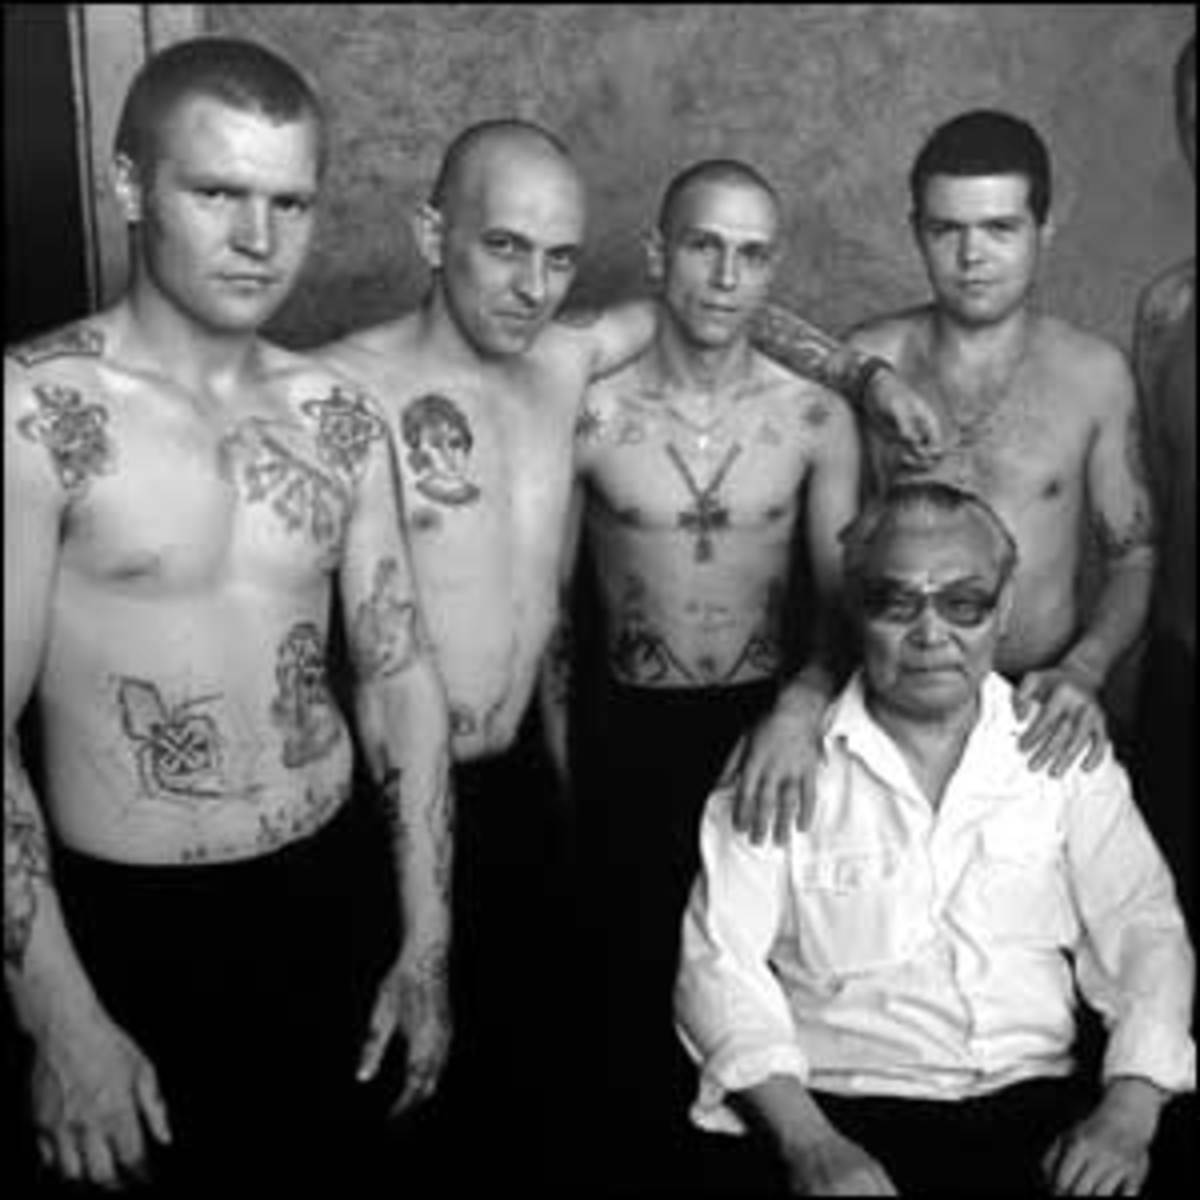 Danzig Baldaev (seated), author of the Russian Criminal Tattoo Encyclopedia